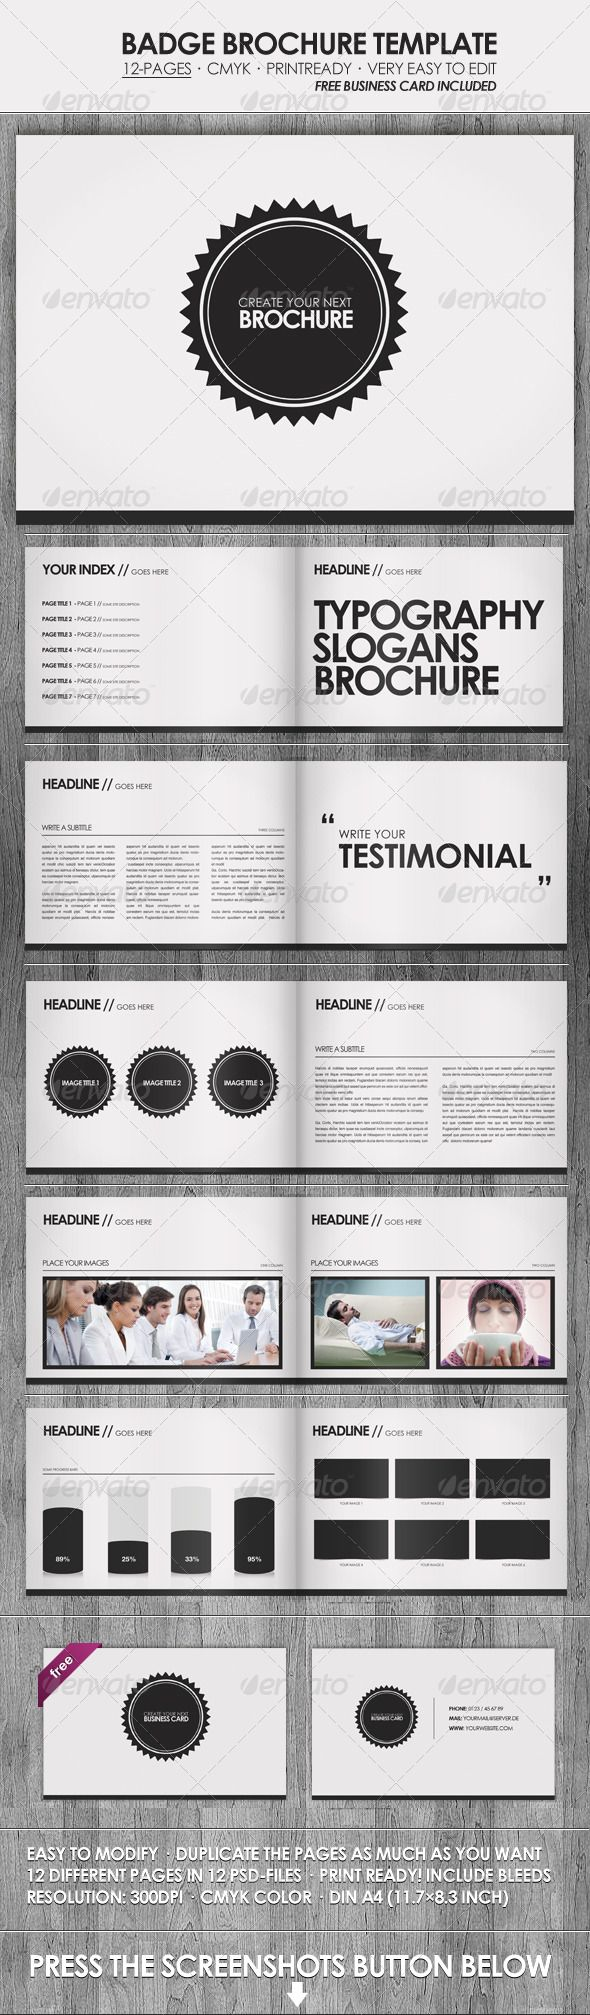 Badge - Brochure / Presentation Template - GraphicRiver Item for Sale